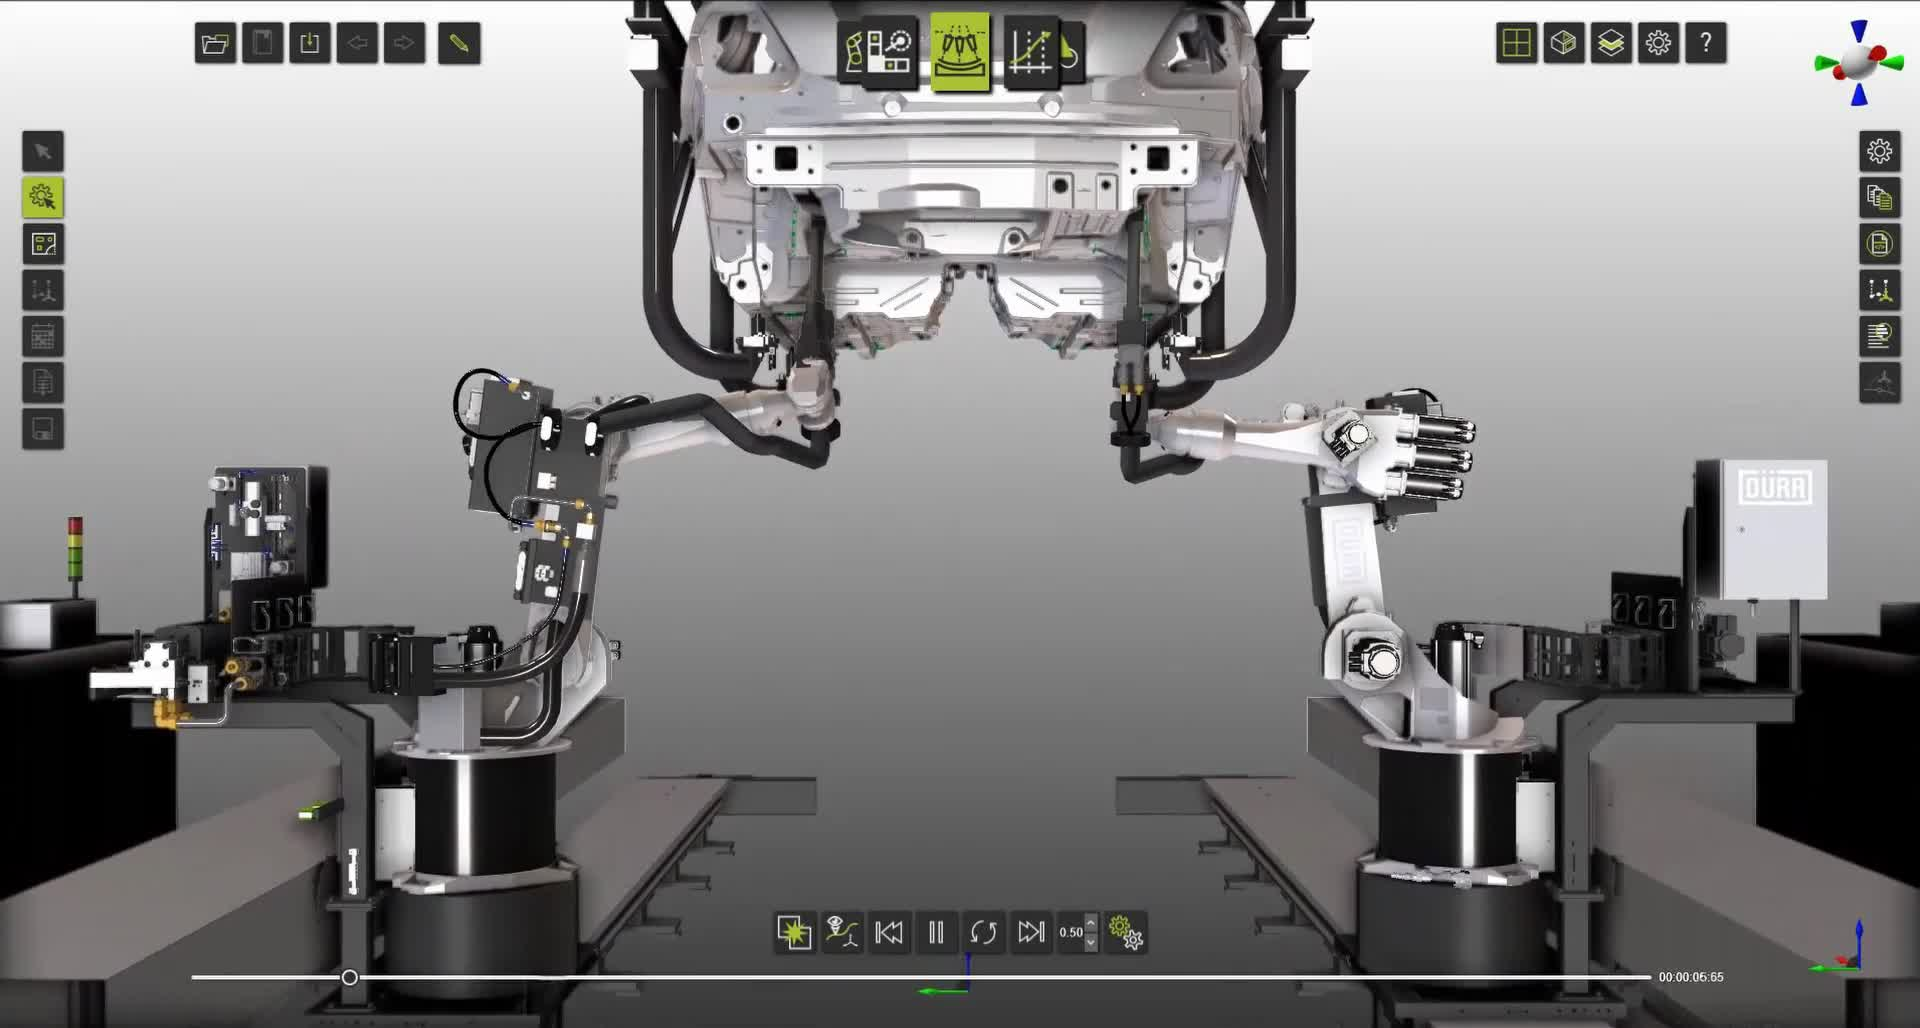 Seam Sealing with Dürr powered by FASTSUITE